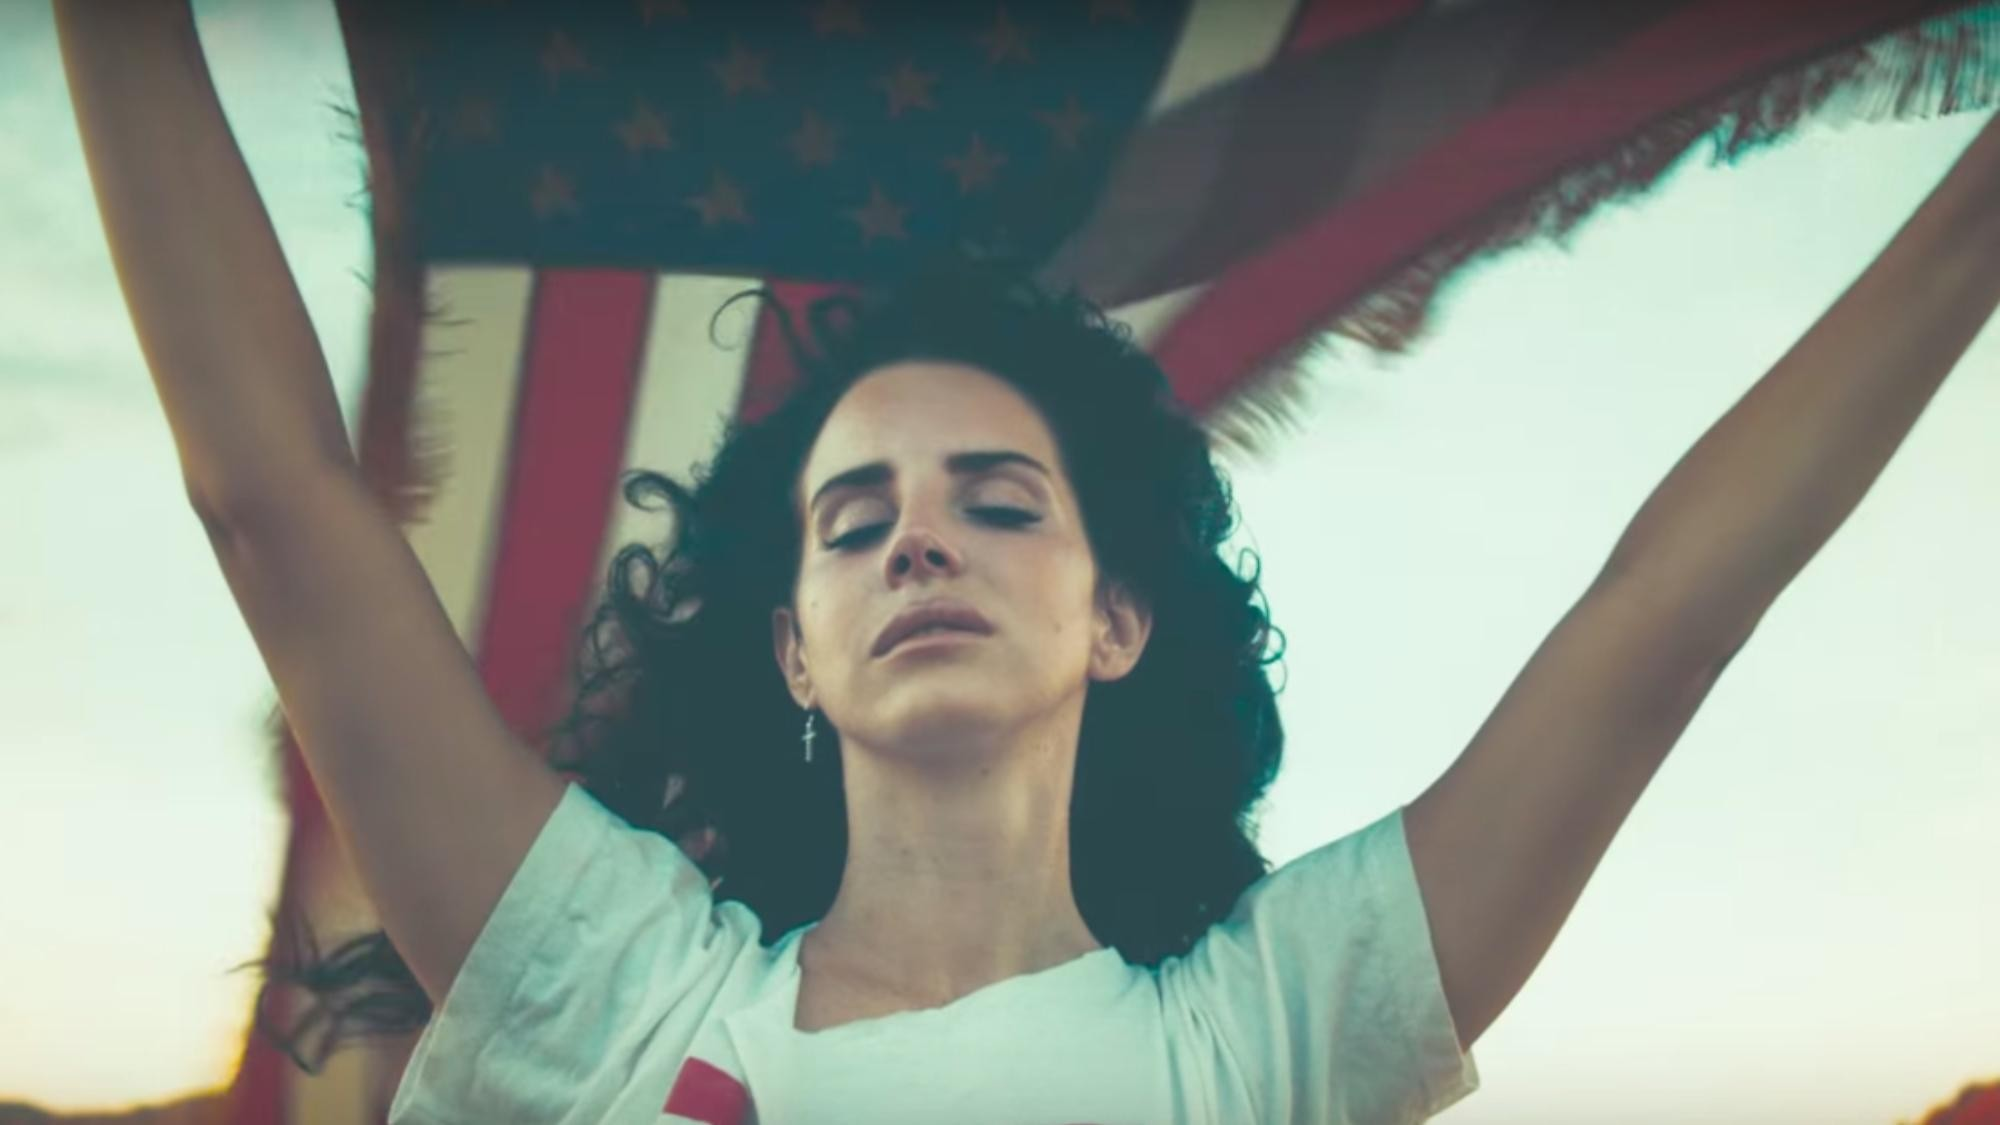 lana del rey is done with american flags thanks to trump